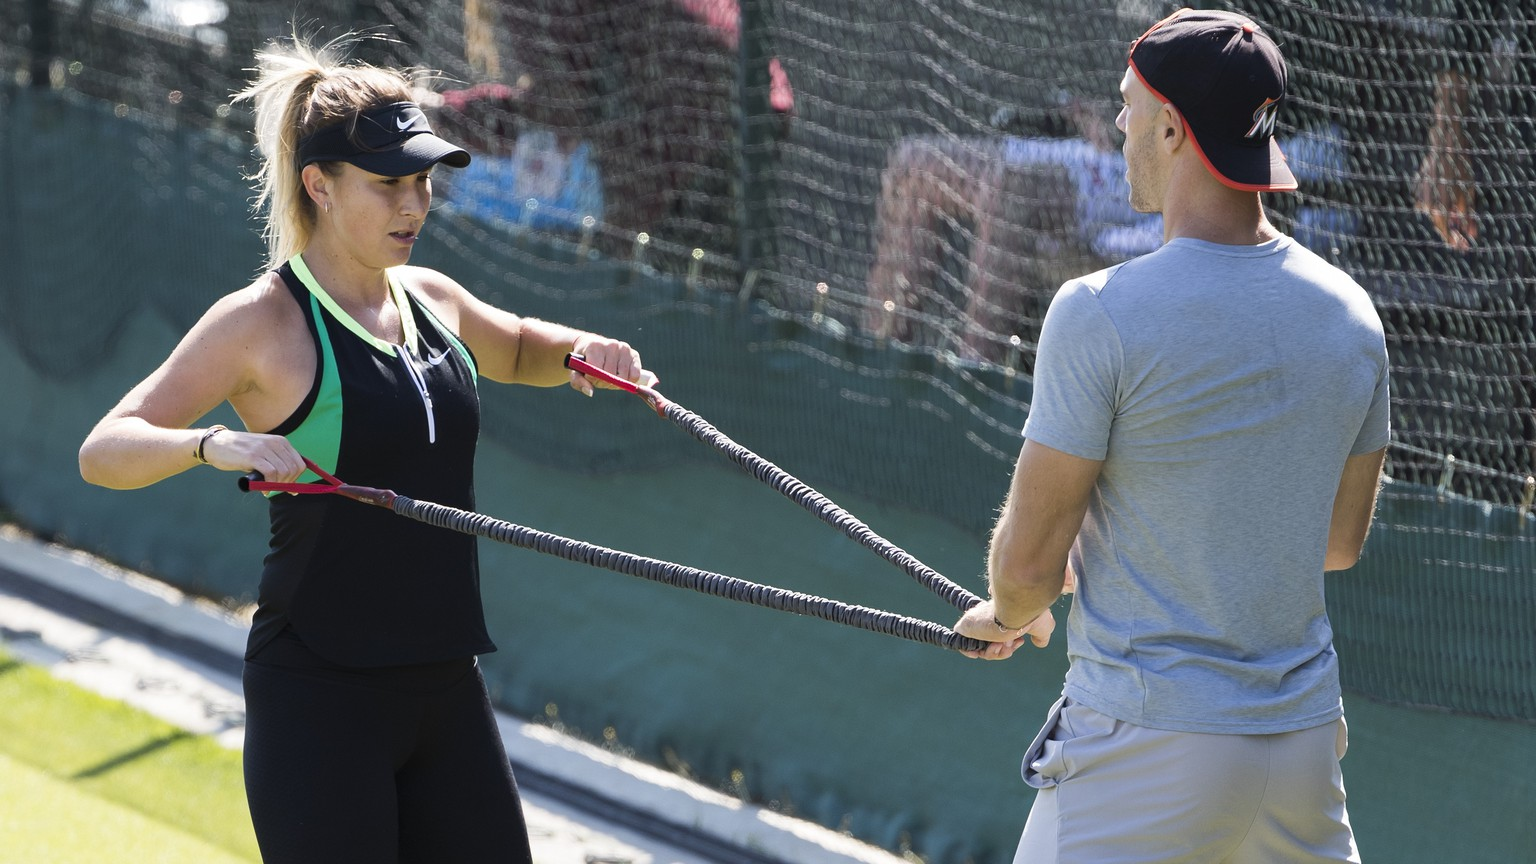 Belinda Bencic of Switzerland and her fitness coach Martin Hromkovic during a training session at the All England Lawn Tennis Championships in Wimbledon, London, Wednesday, June 27, 2018. The Wimbledon Tennis Championships 2018 will be held in London from 2 July to 15 July. (KEYSTONE/Peter Klaunzer)